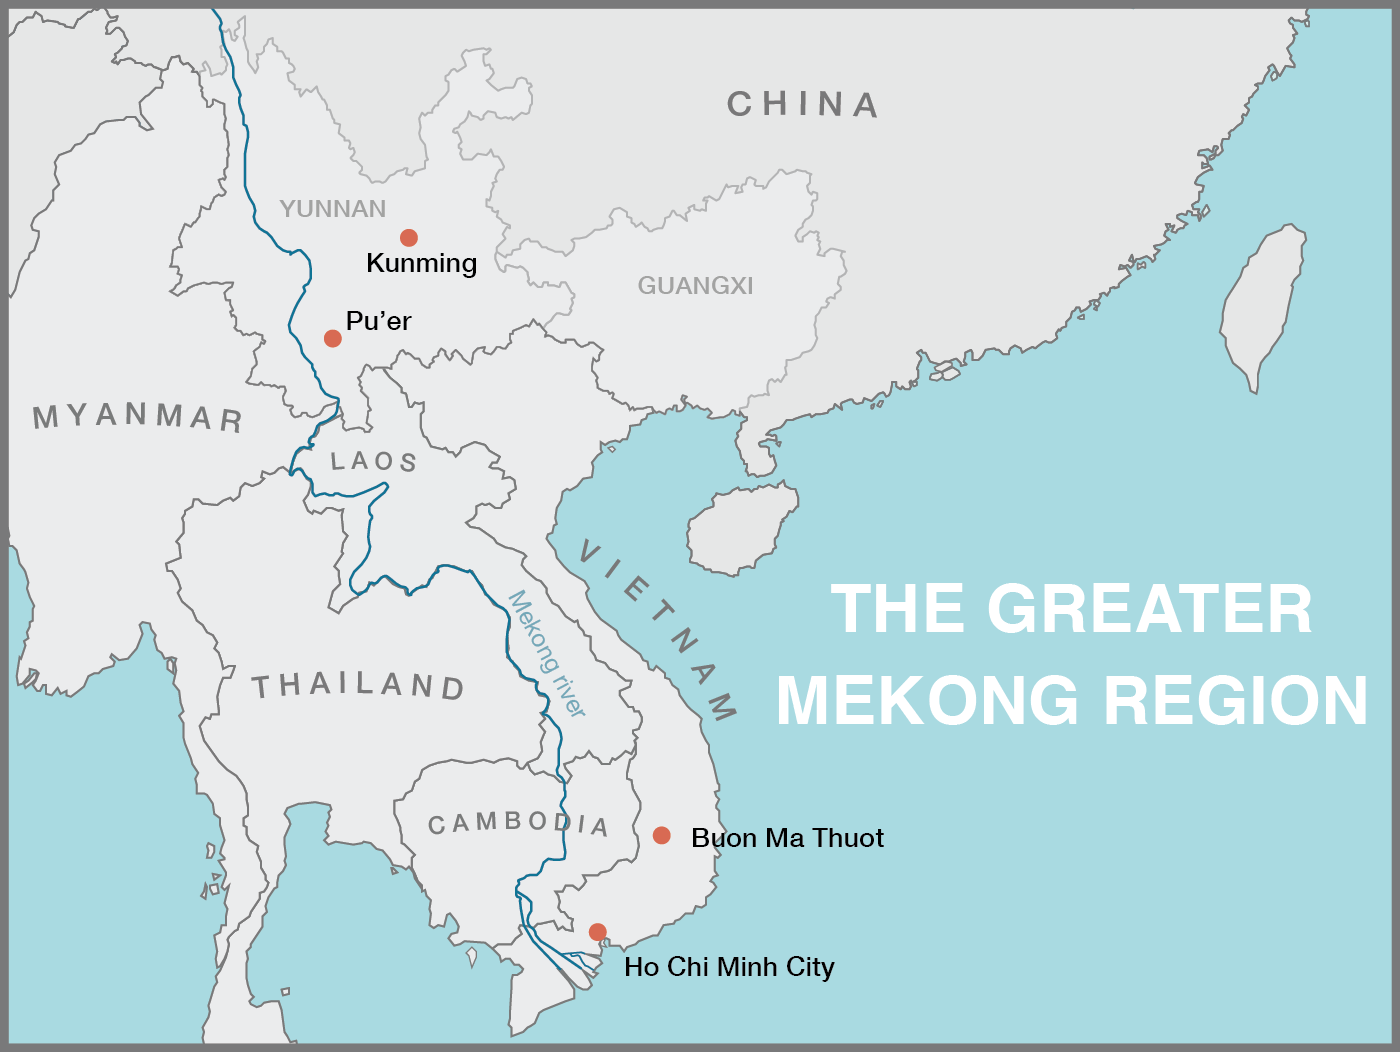 Greater mekong region map, mekong river map